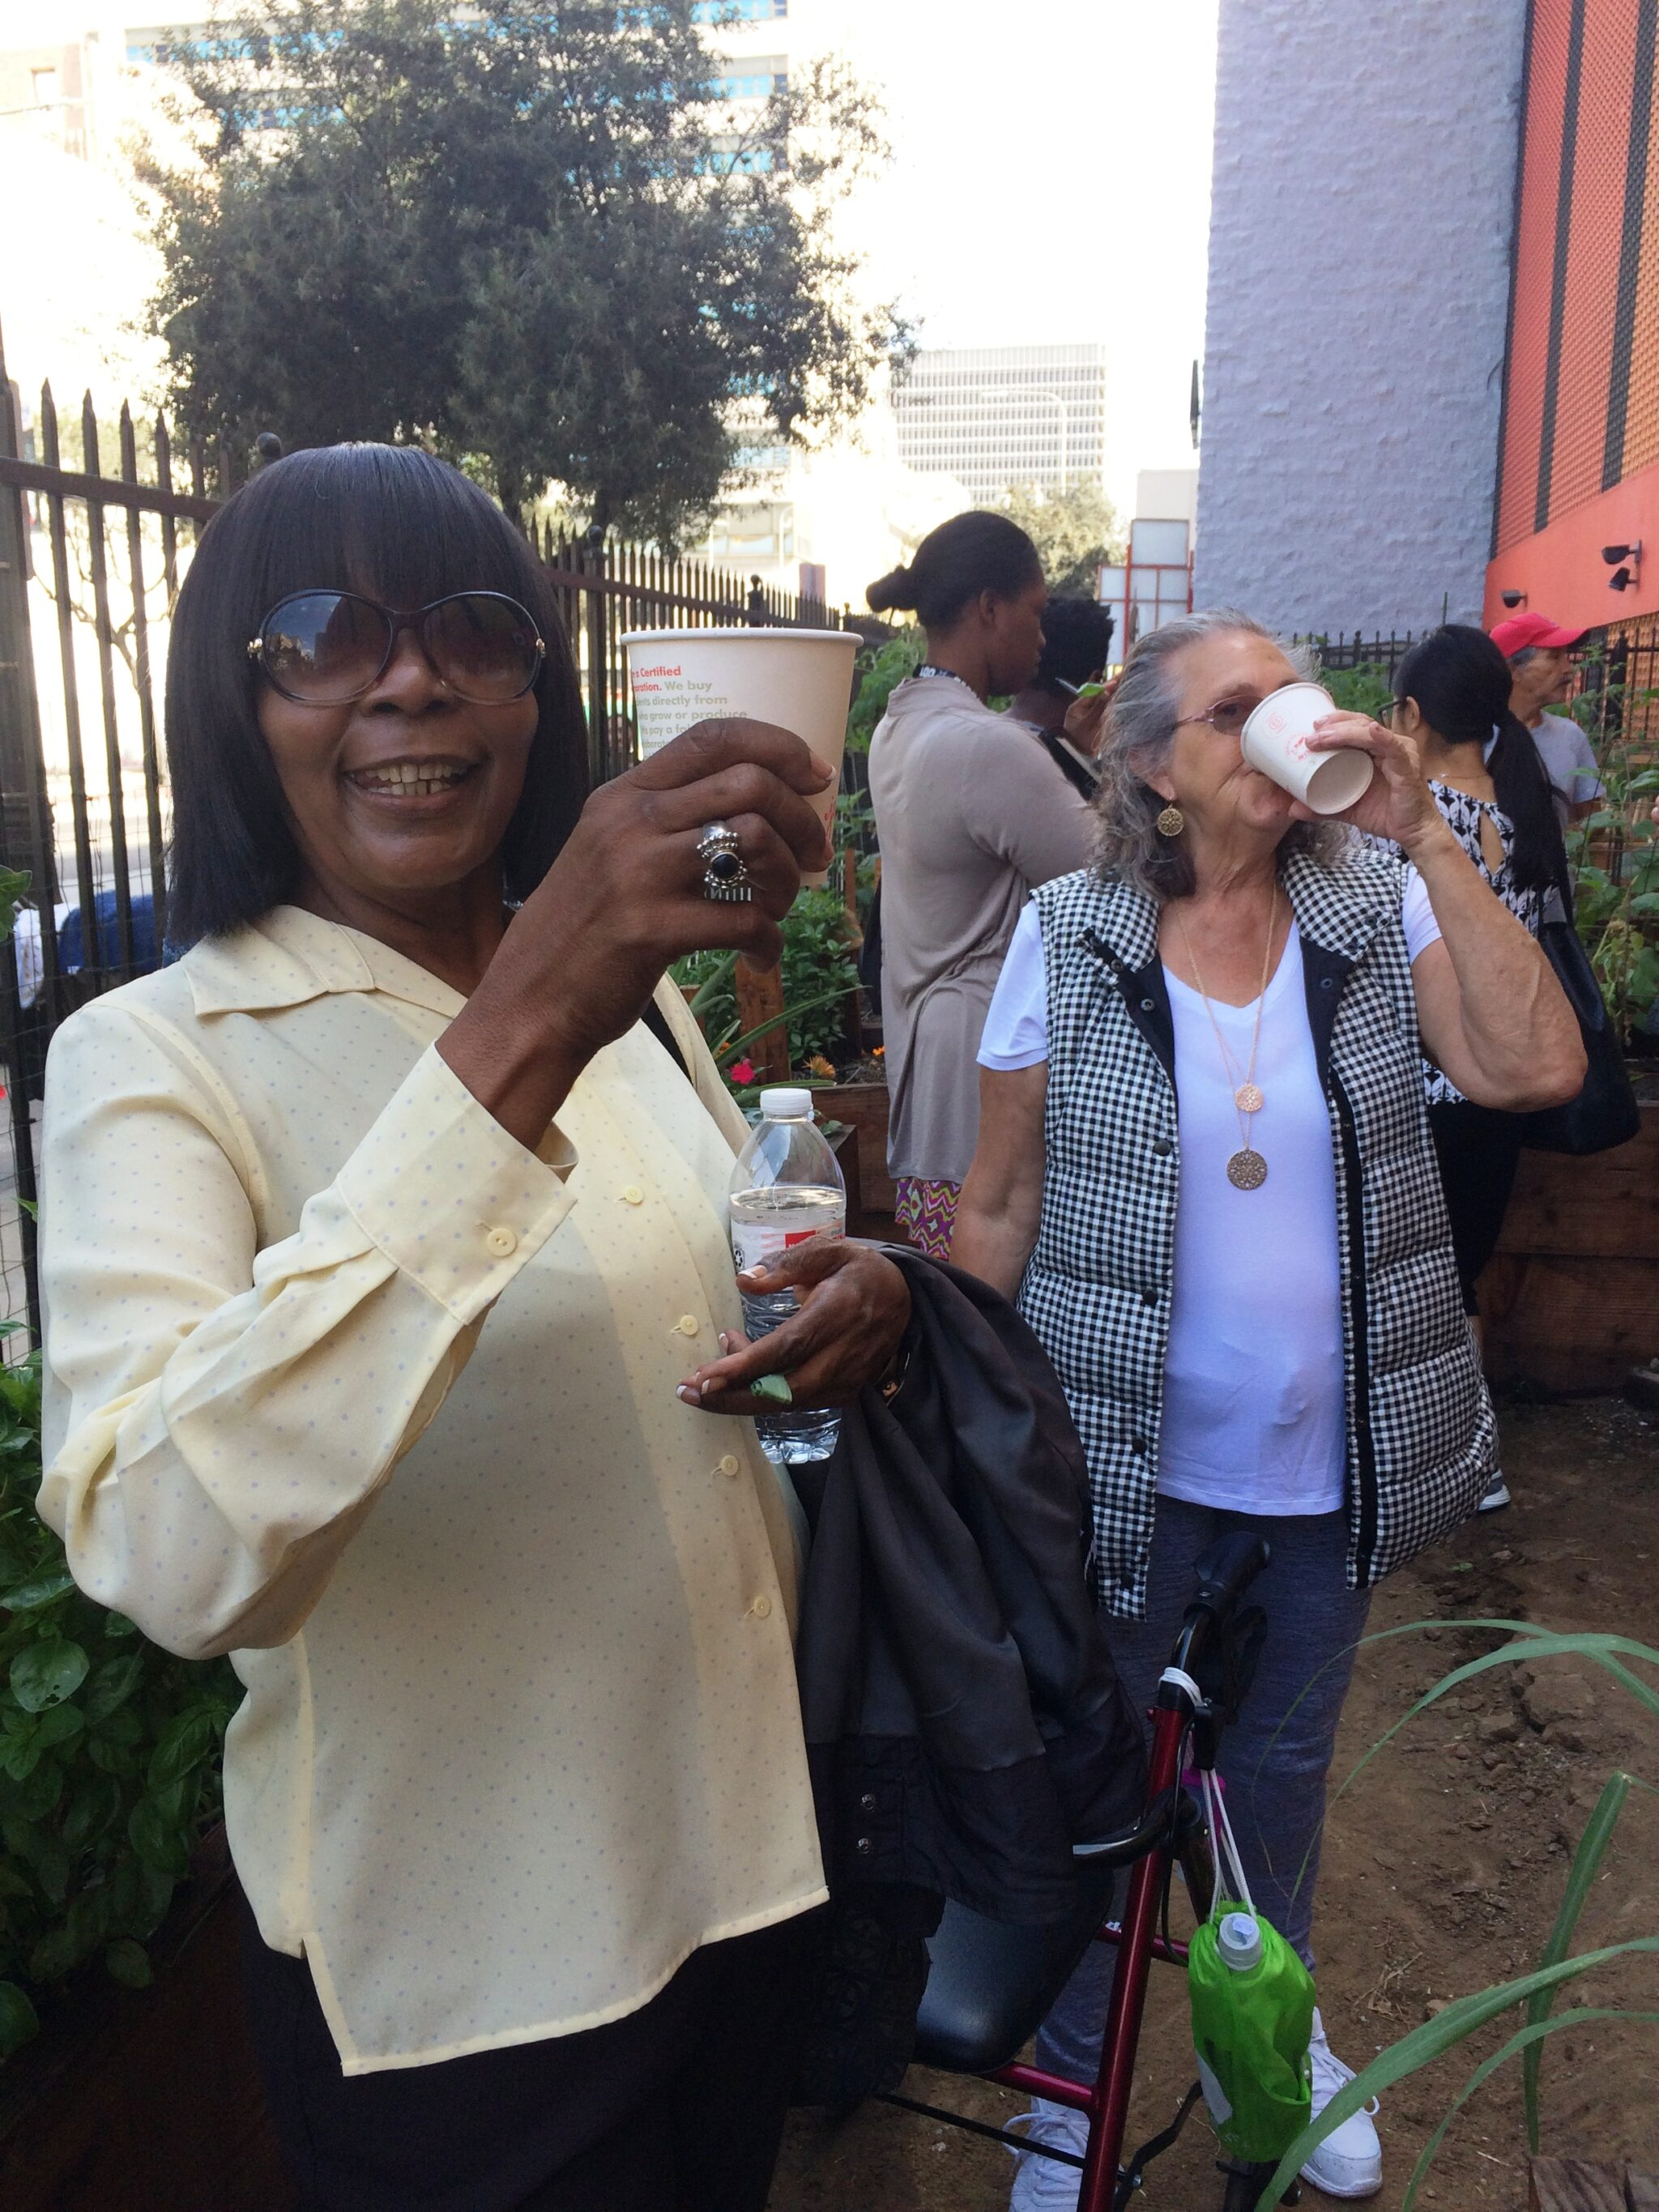 Women of Skid Row project